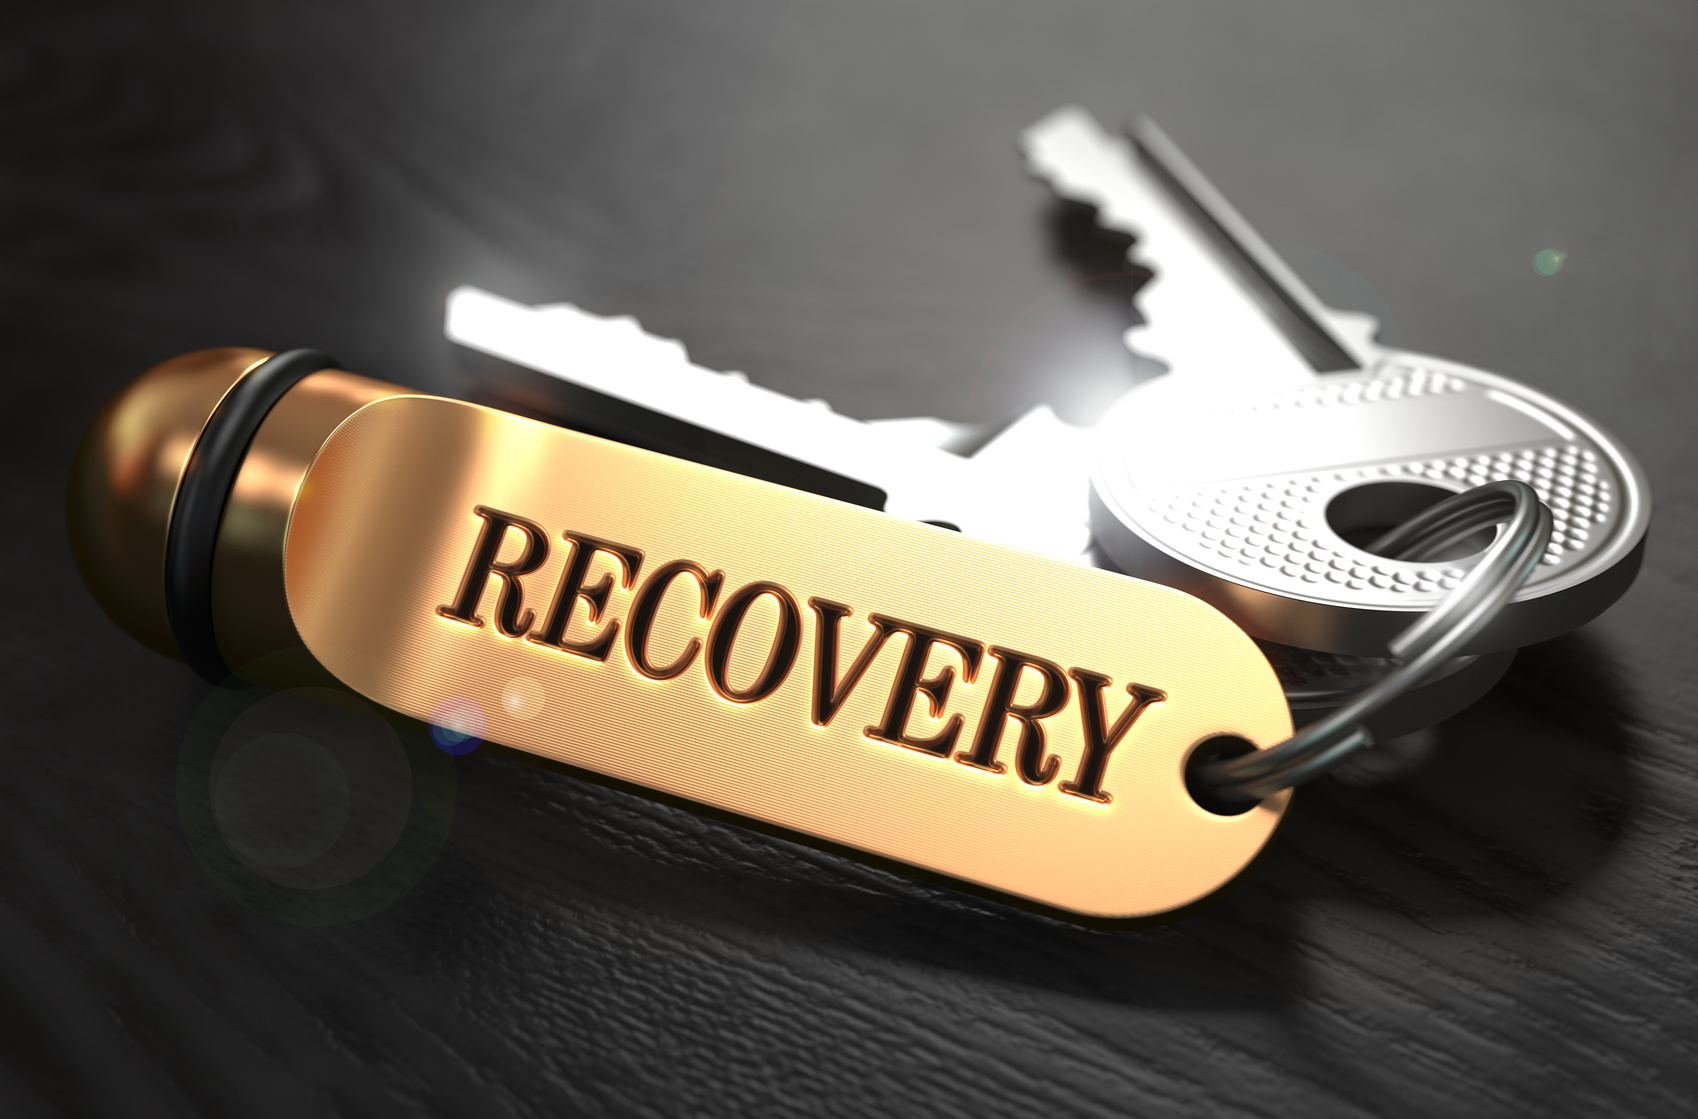 The Road 2 Recovery